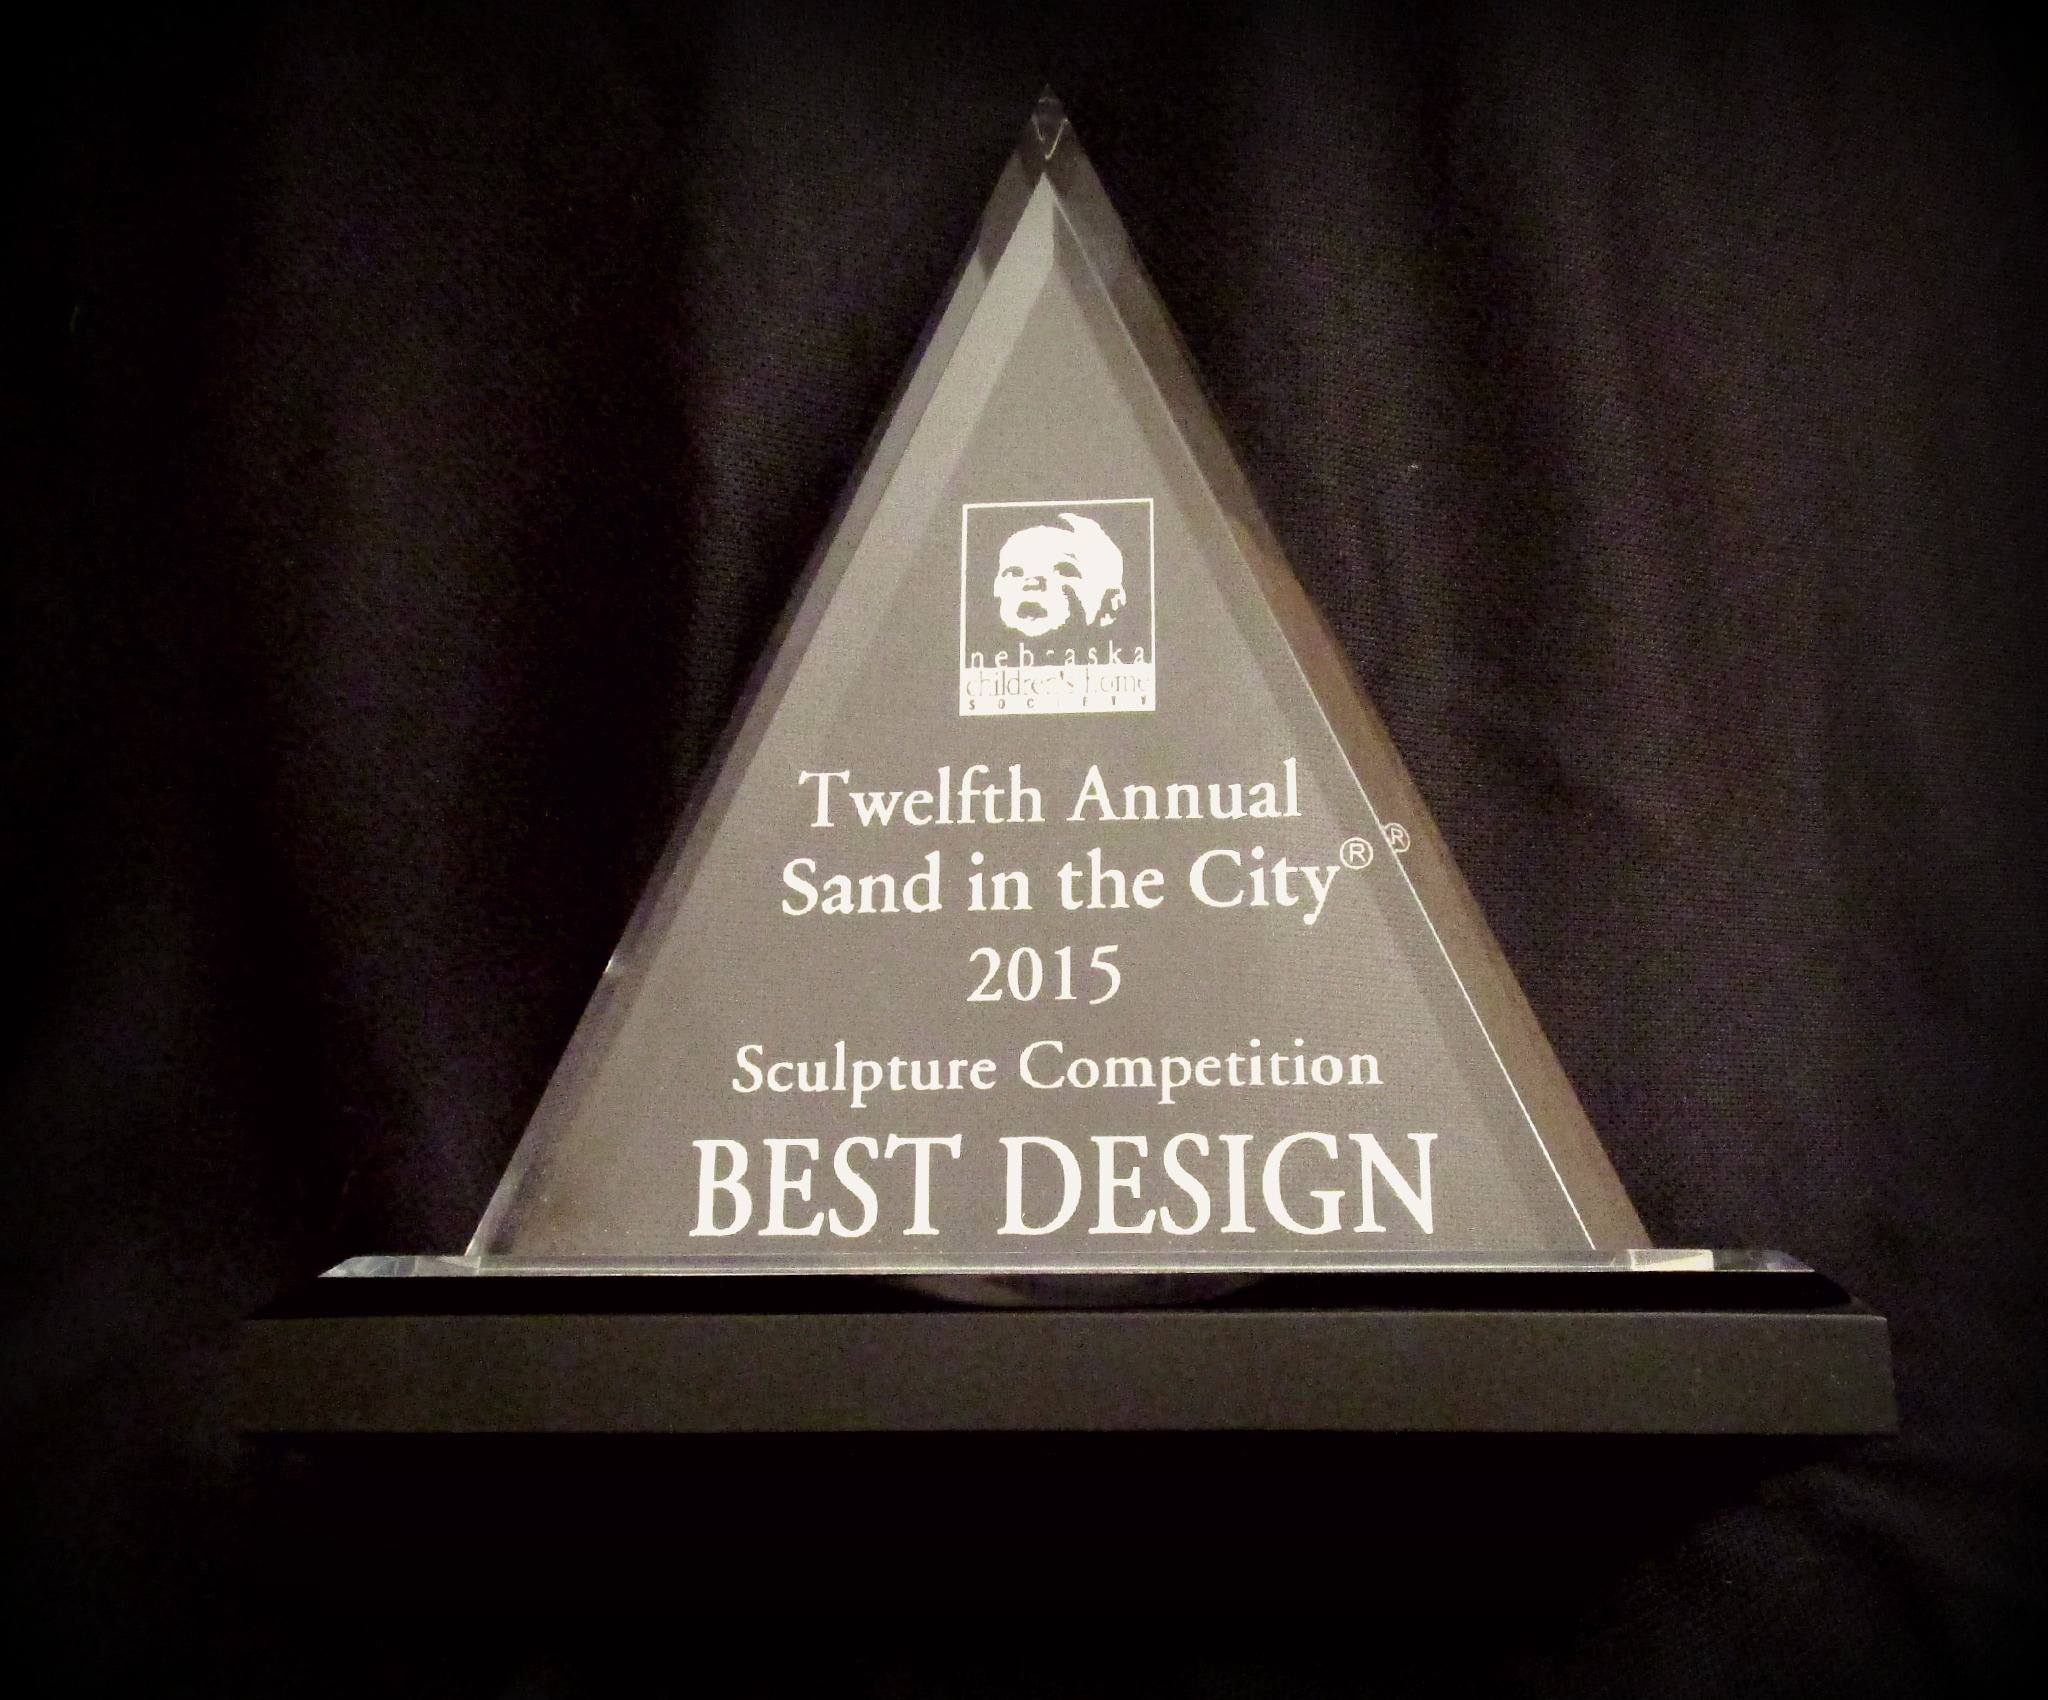 Sand in the City 2015 Best Design